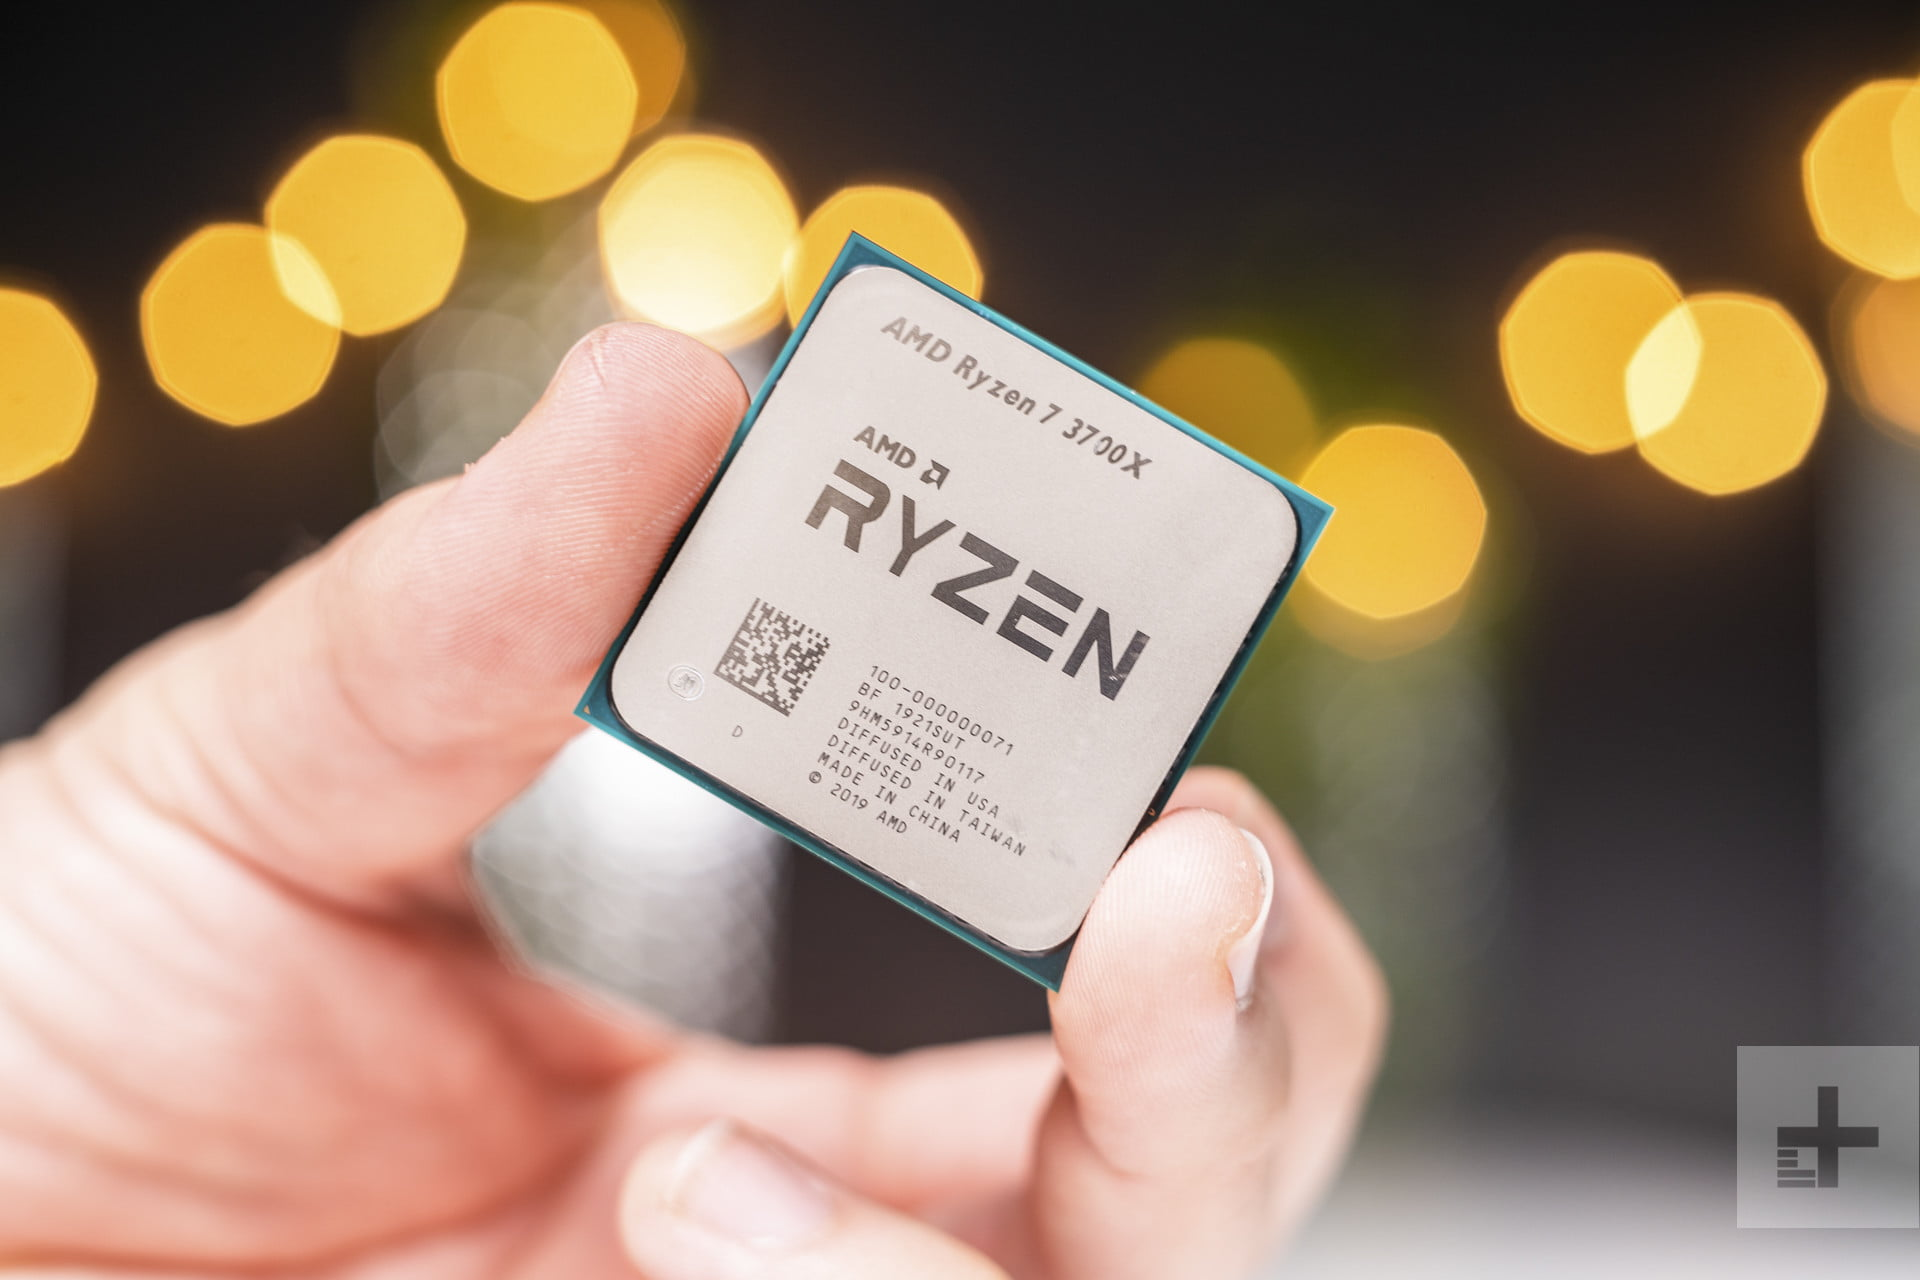 AMD Ryzen 9 3900X Review: The New King Of High-End Enthusiast CPUs